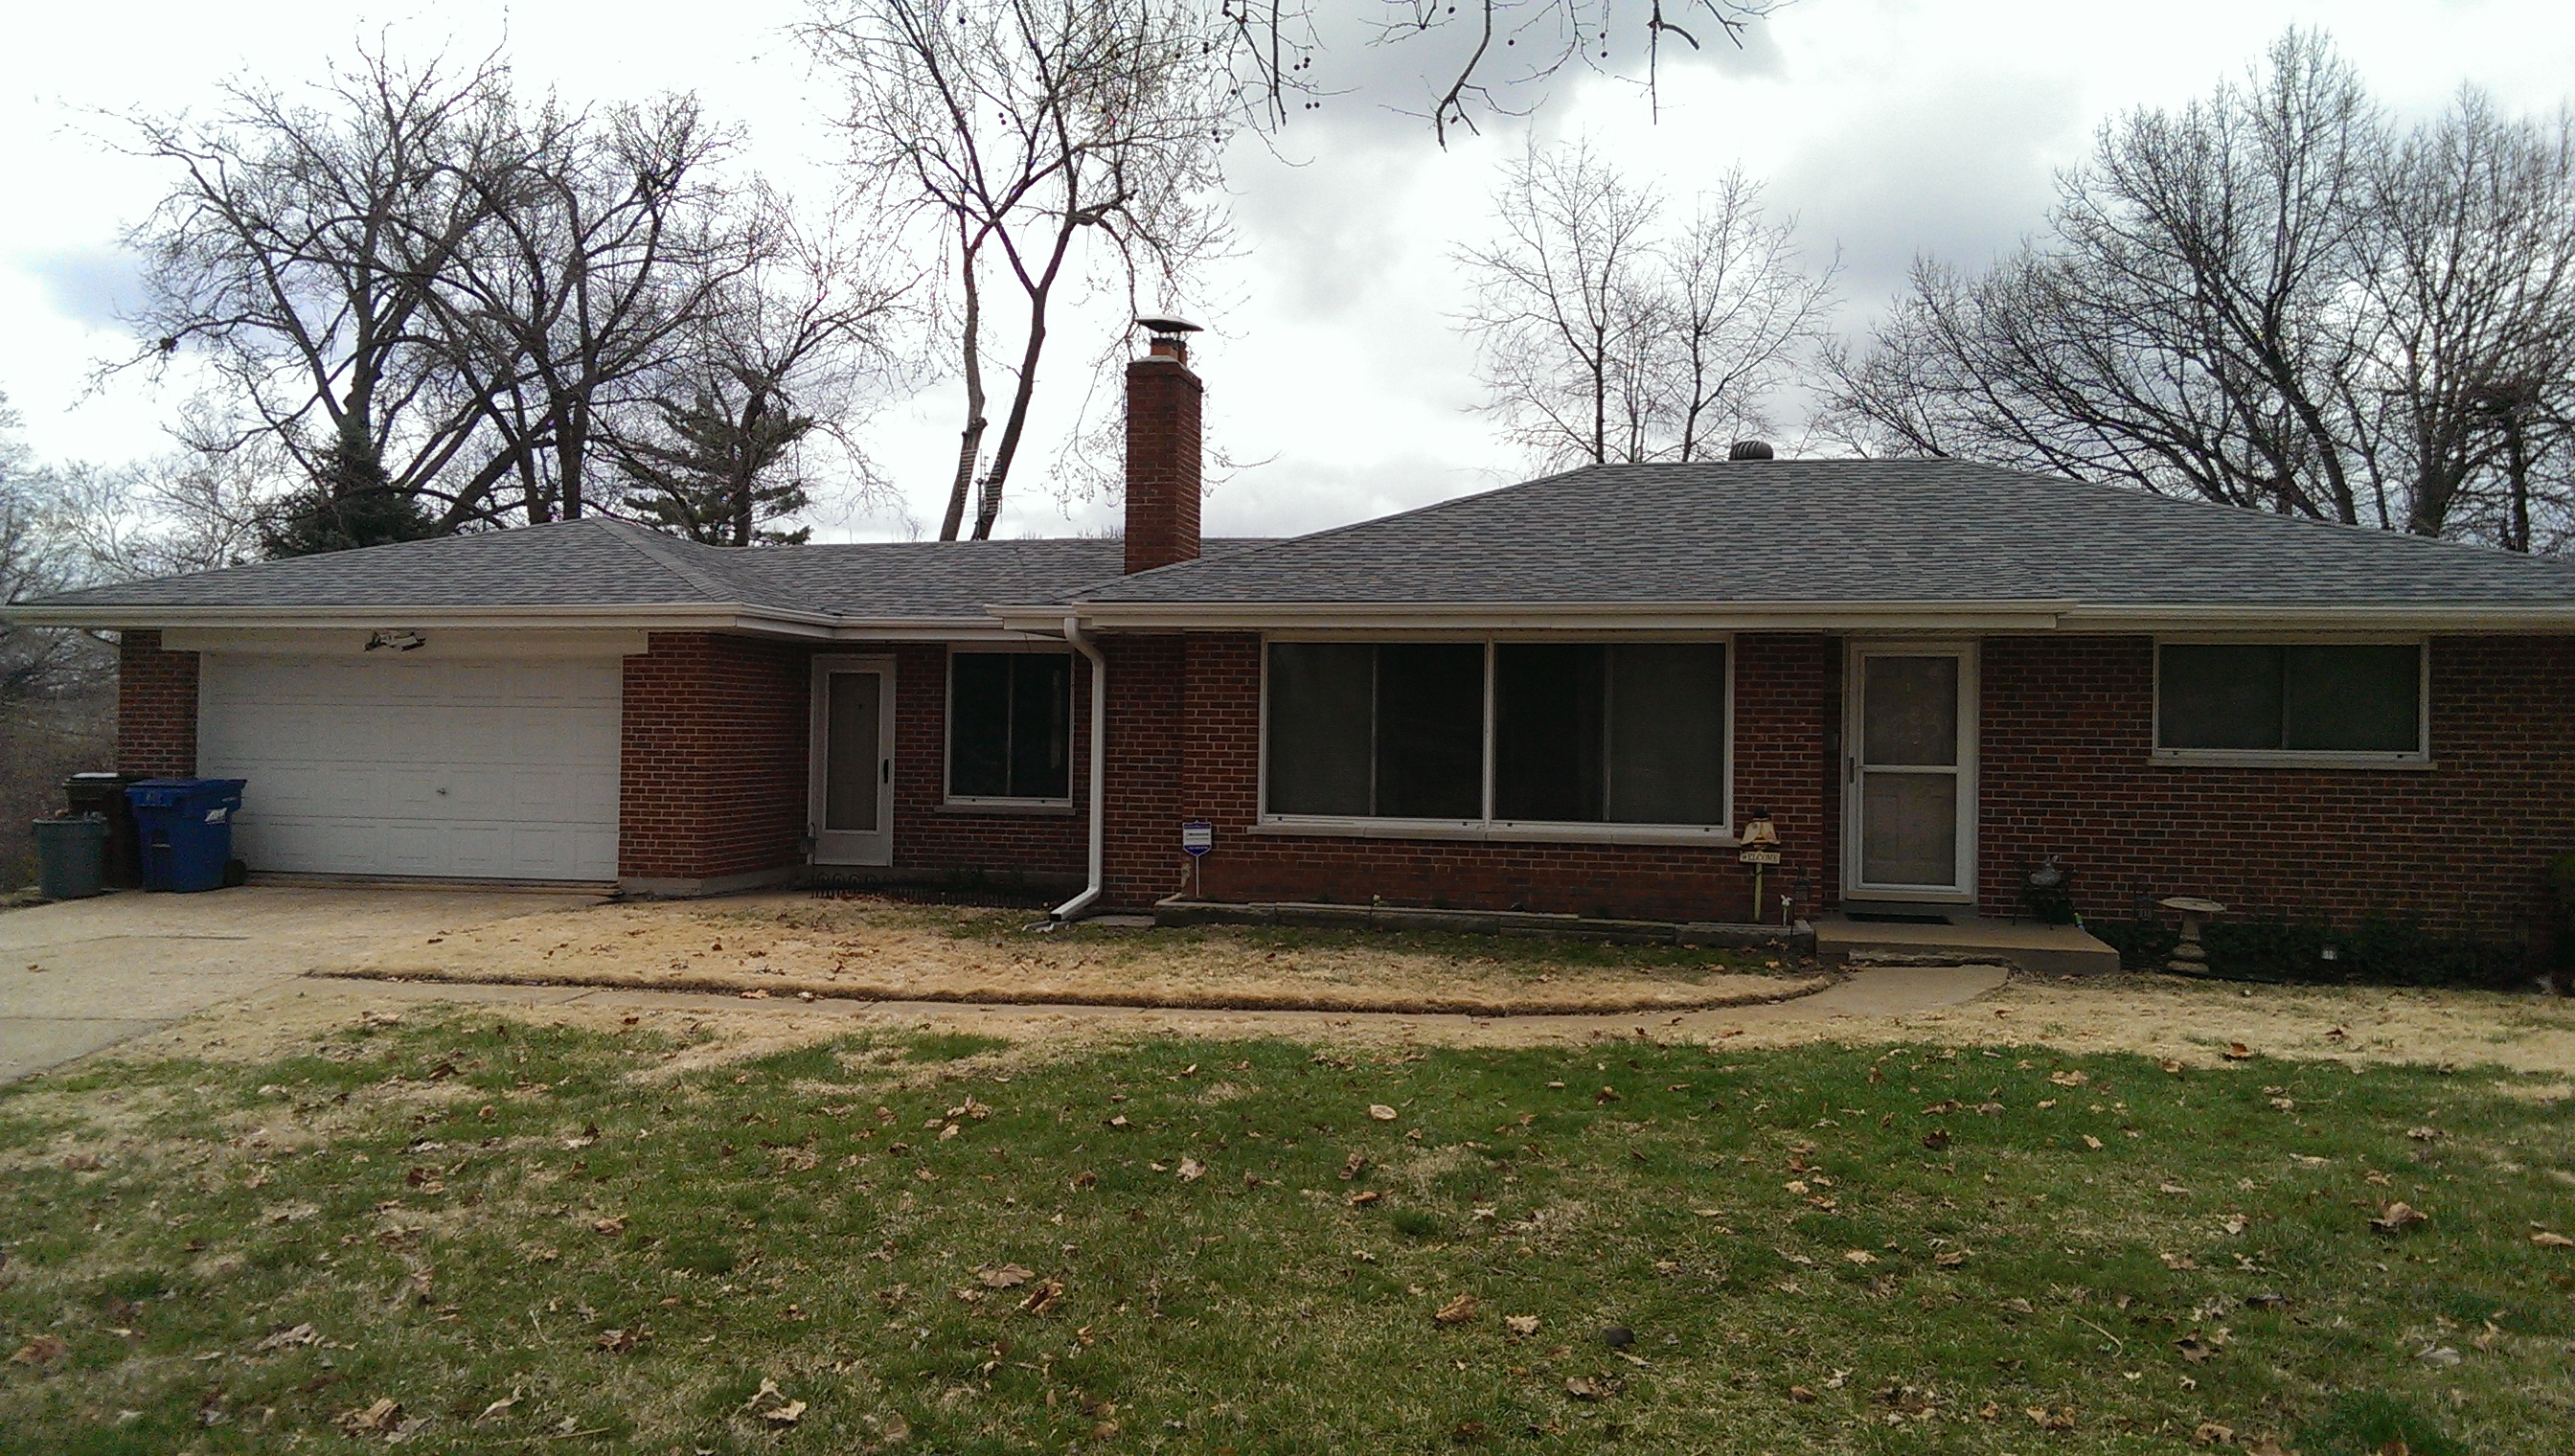 County Roofing In Saint Charles Mo 63304